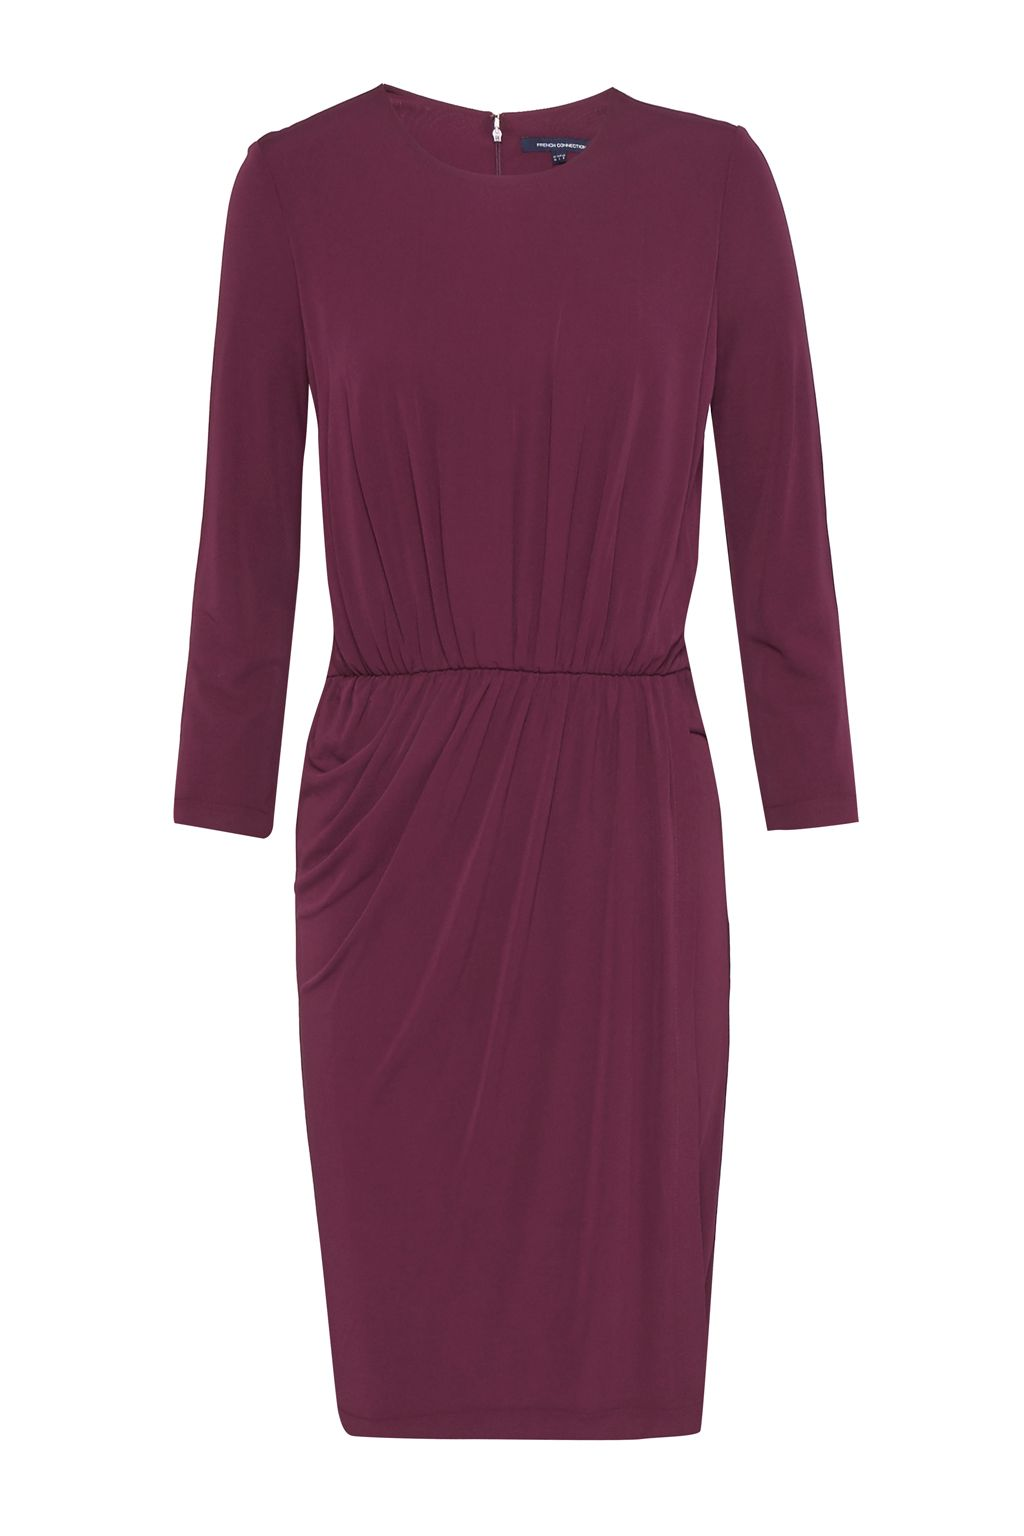 French Connection Elsa Drape Jersey Dress, Dark Purple